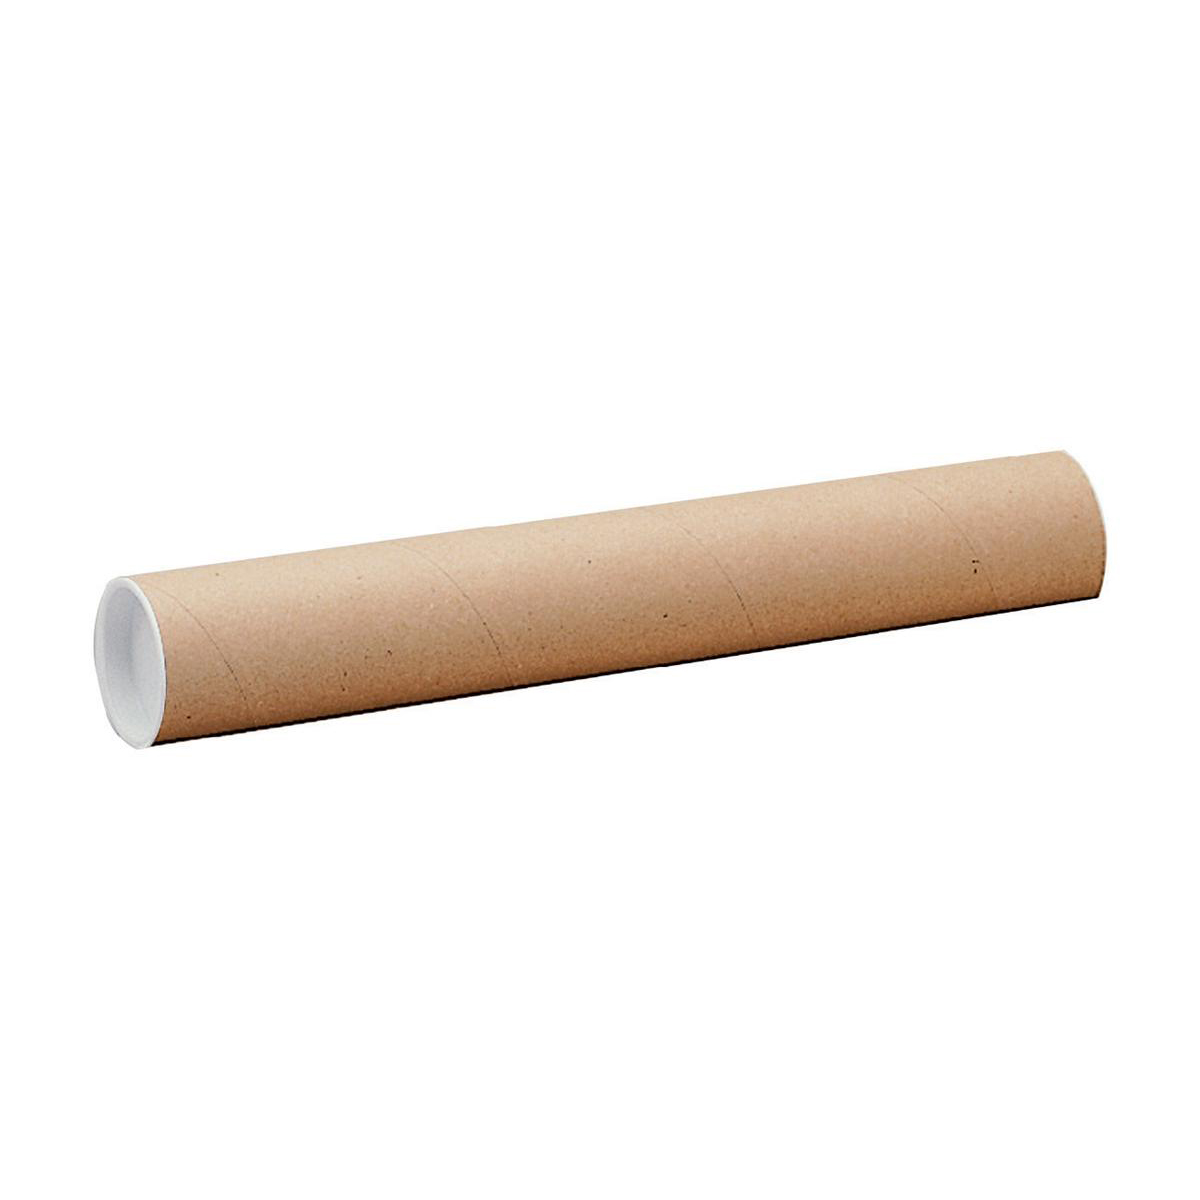 Postal Tube Cardboard with Plastic End Caps A0 L890xDia.50mm PT?890/50MM [Pack 25]